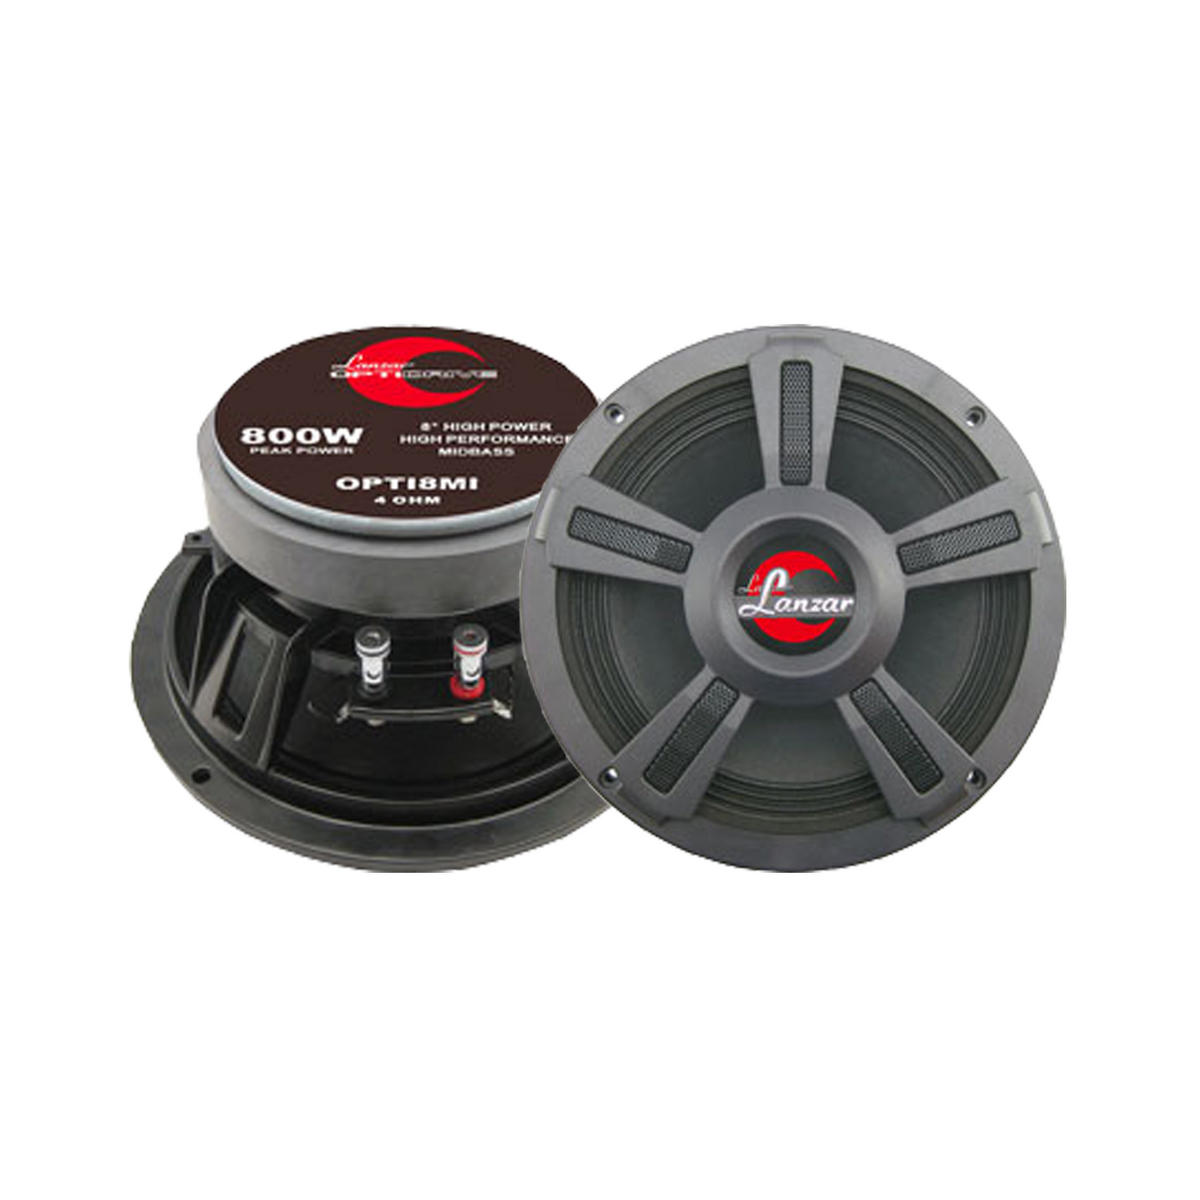 "Lanzar Opti Pro Mid Bass Driver 8"" 4 Ohm 1600w In Car Audio Subwoofers Sub Woofers"